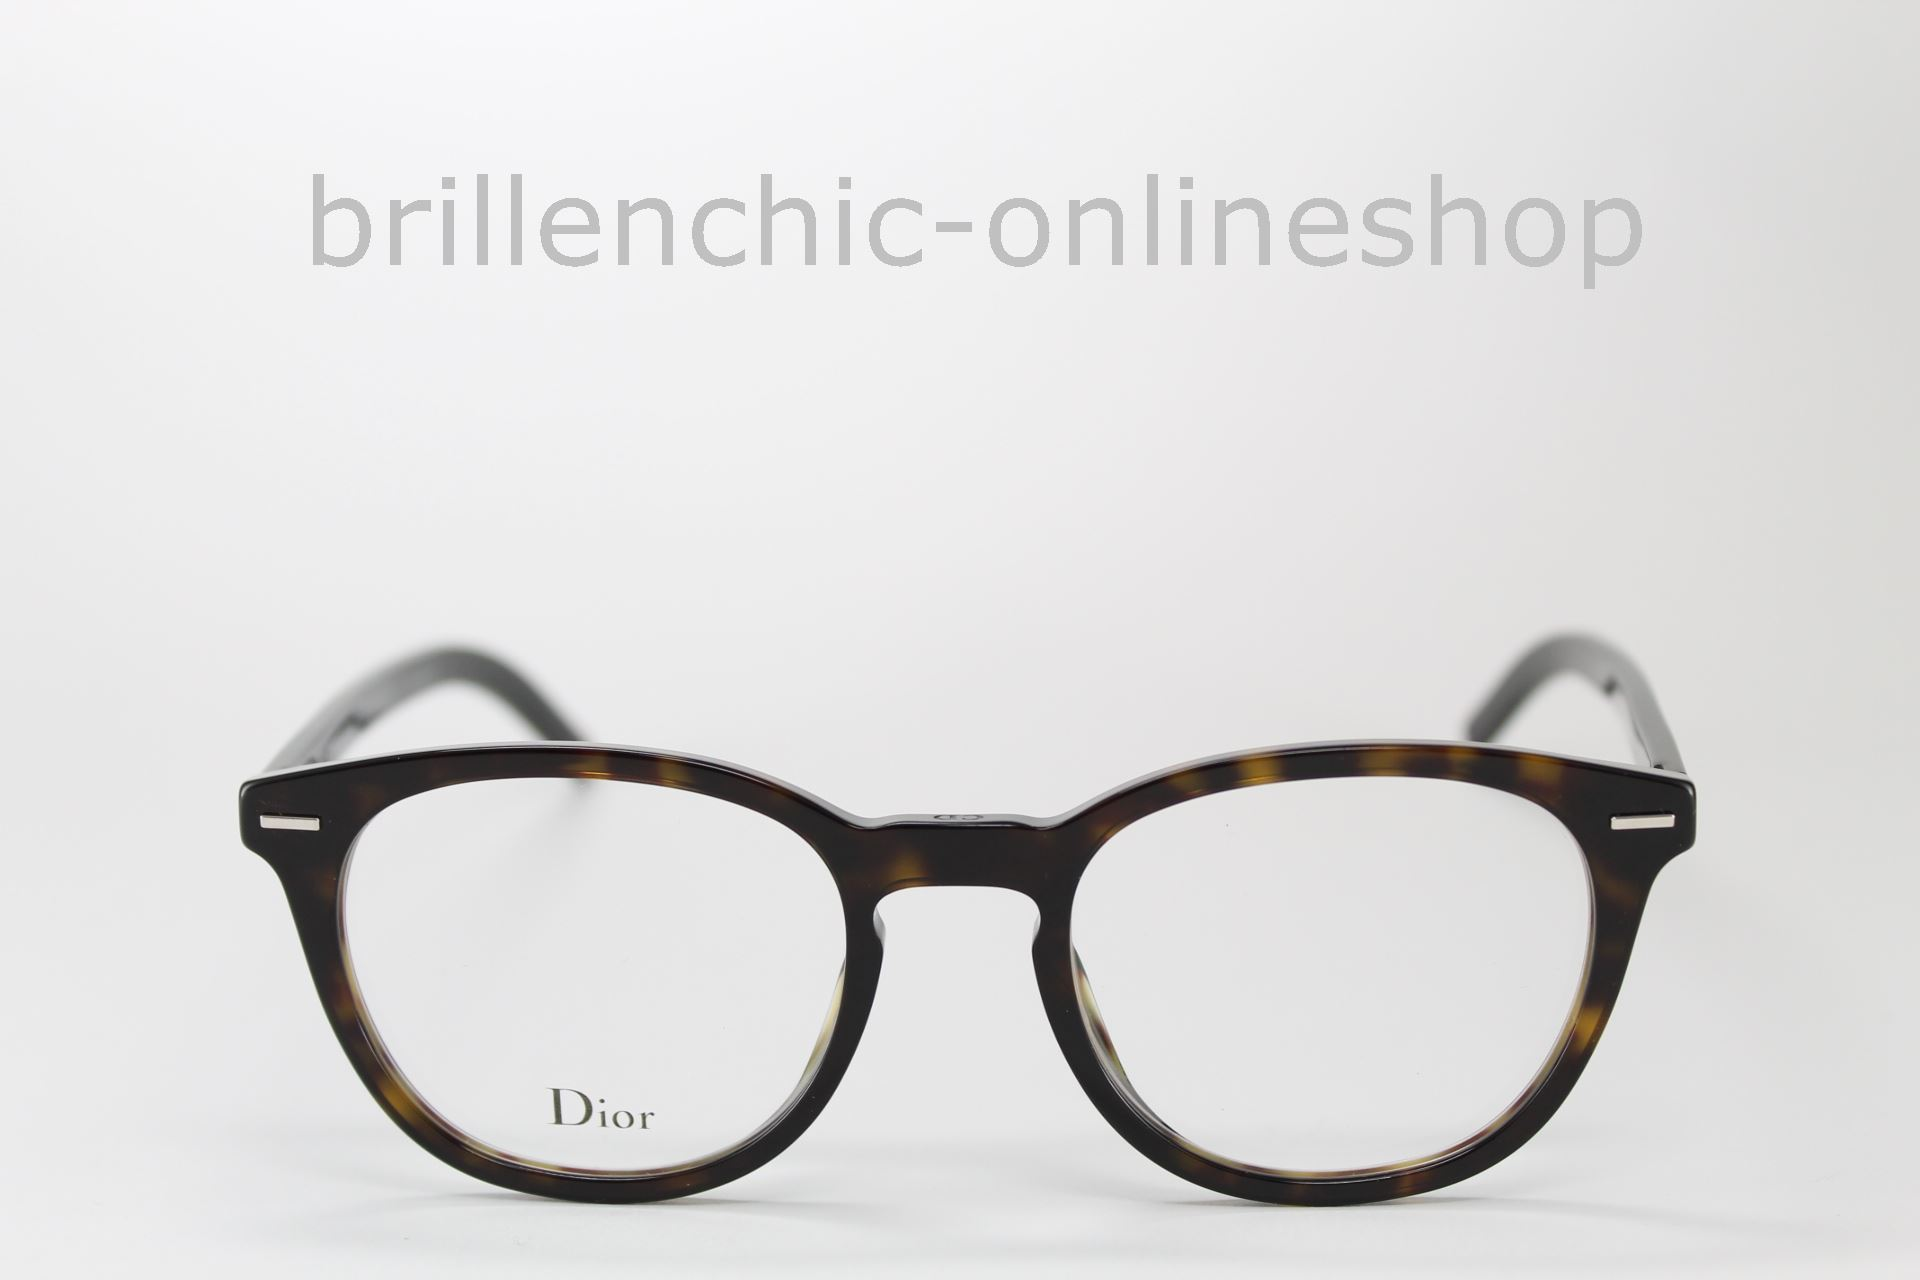 d0846bba5e Brillenchic-onlineshop in Berlin - DIOR HOMME BLACKTIE 238 086